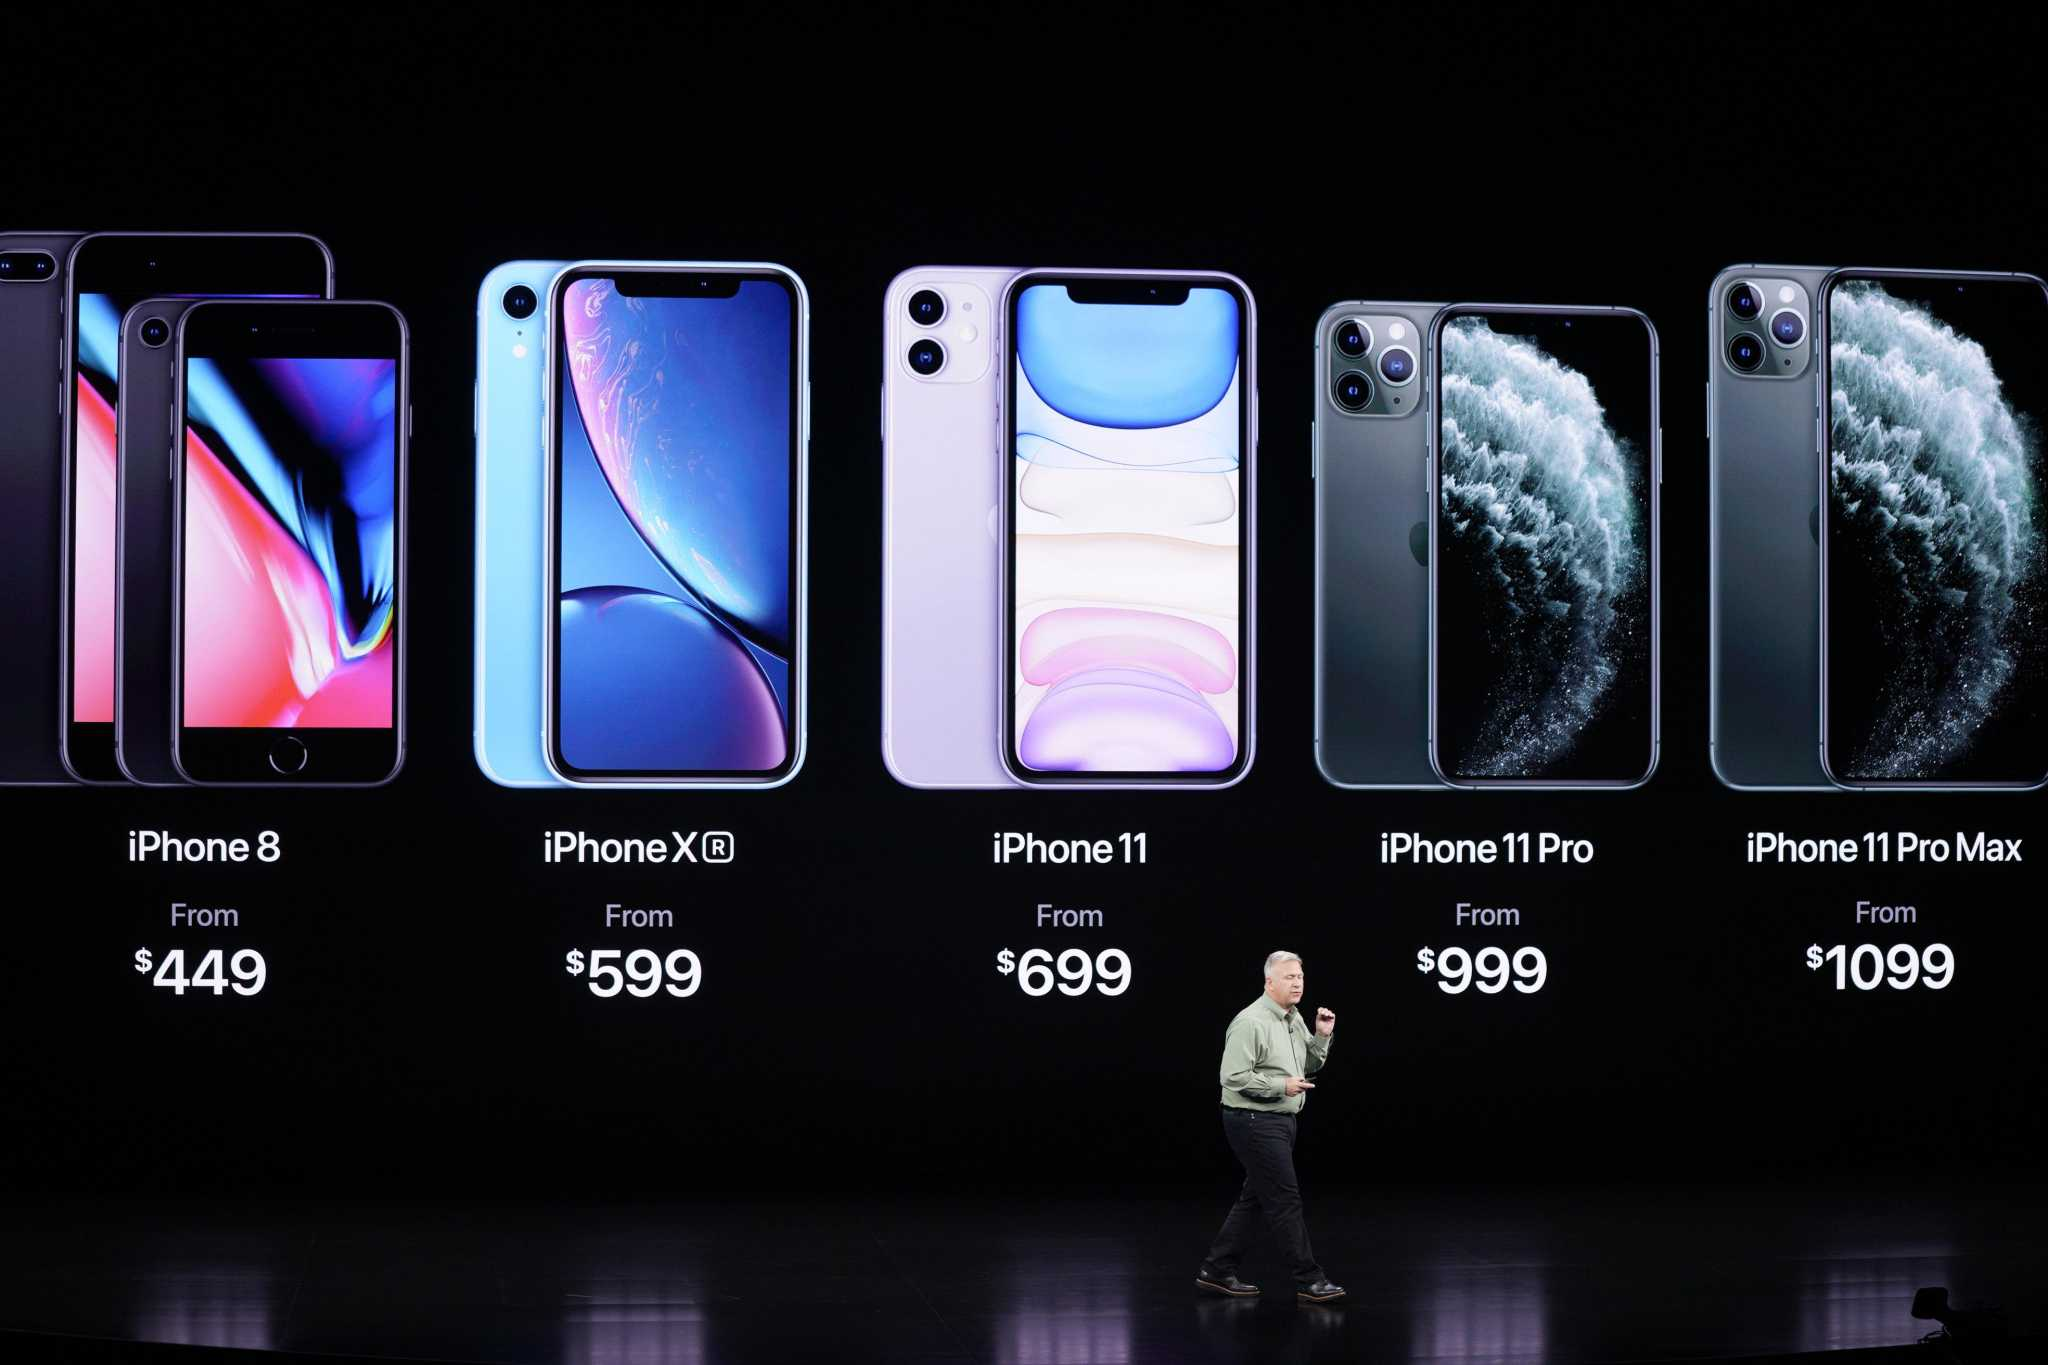 Should you get an iPhone 11? As always, it depends.